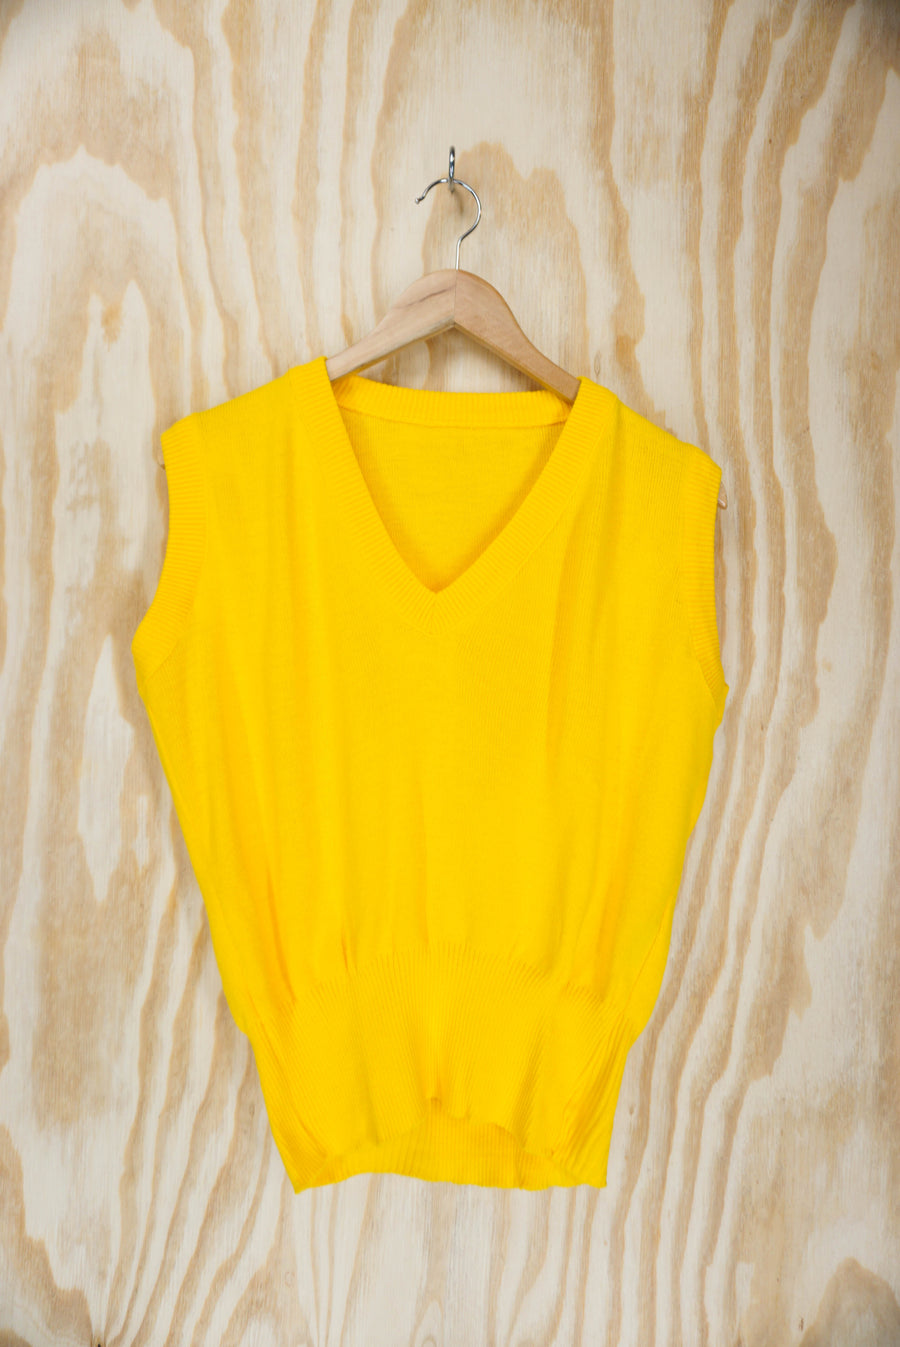 Spencer yellow - size S